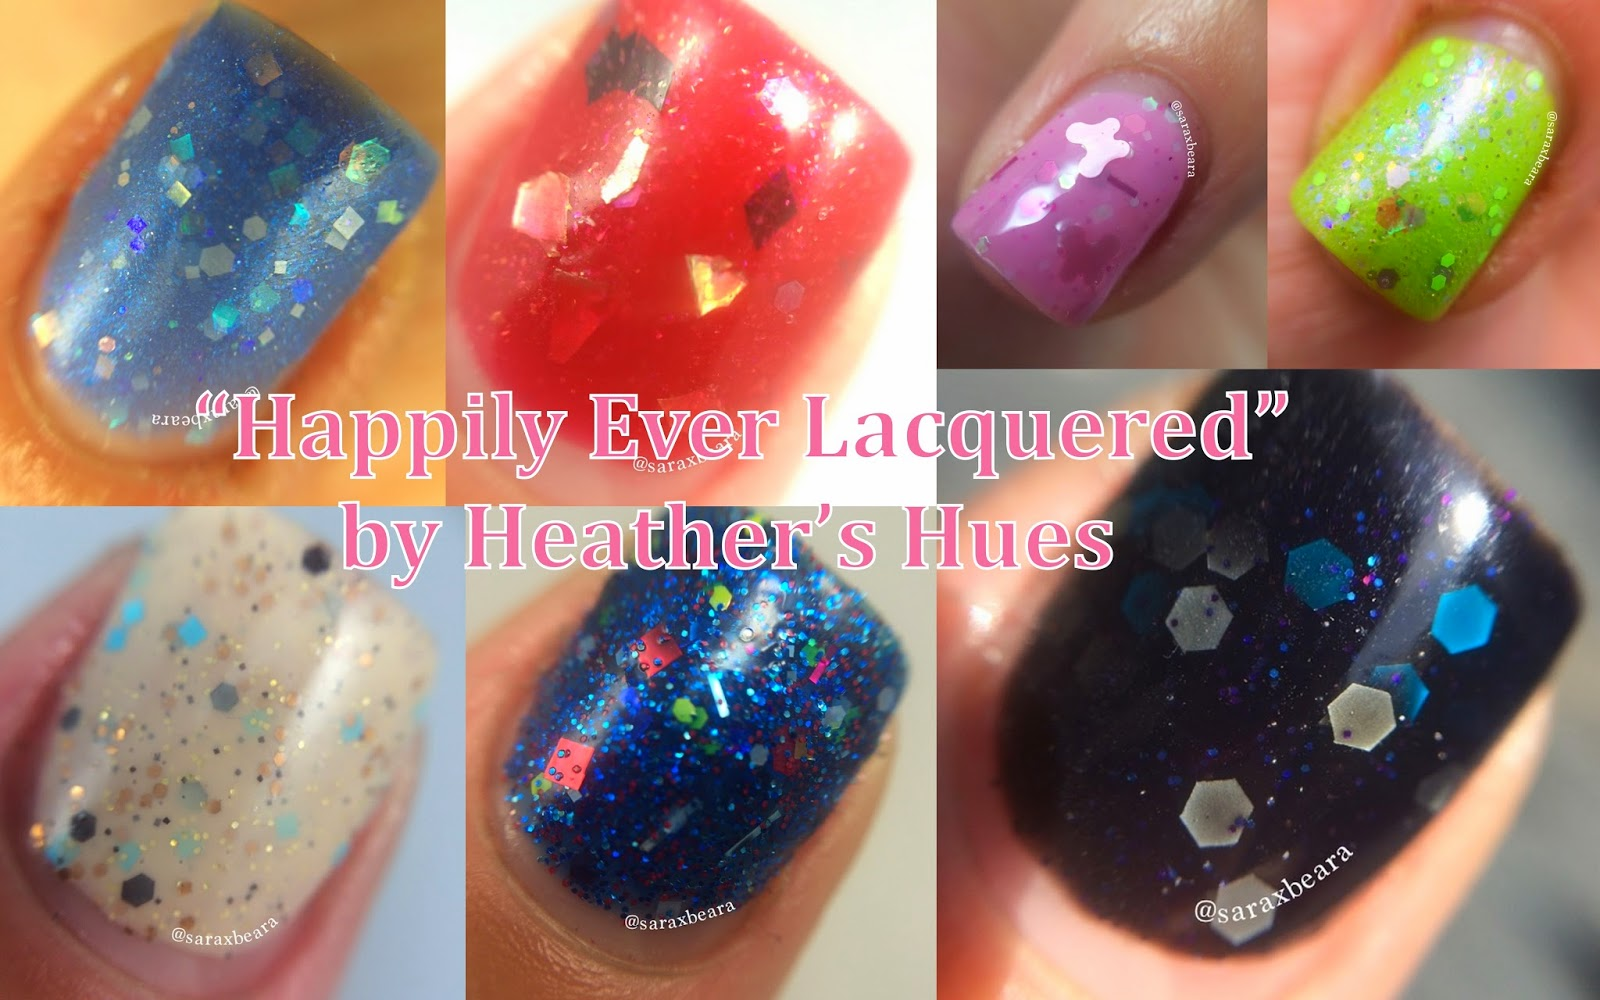 Heather's Hues Happily Ever Lacquered Collection